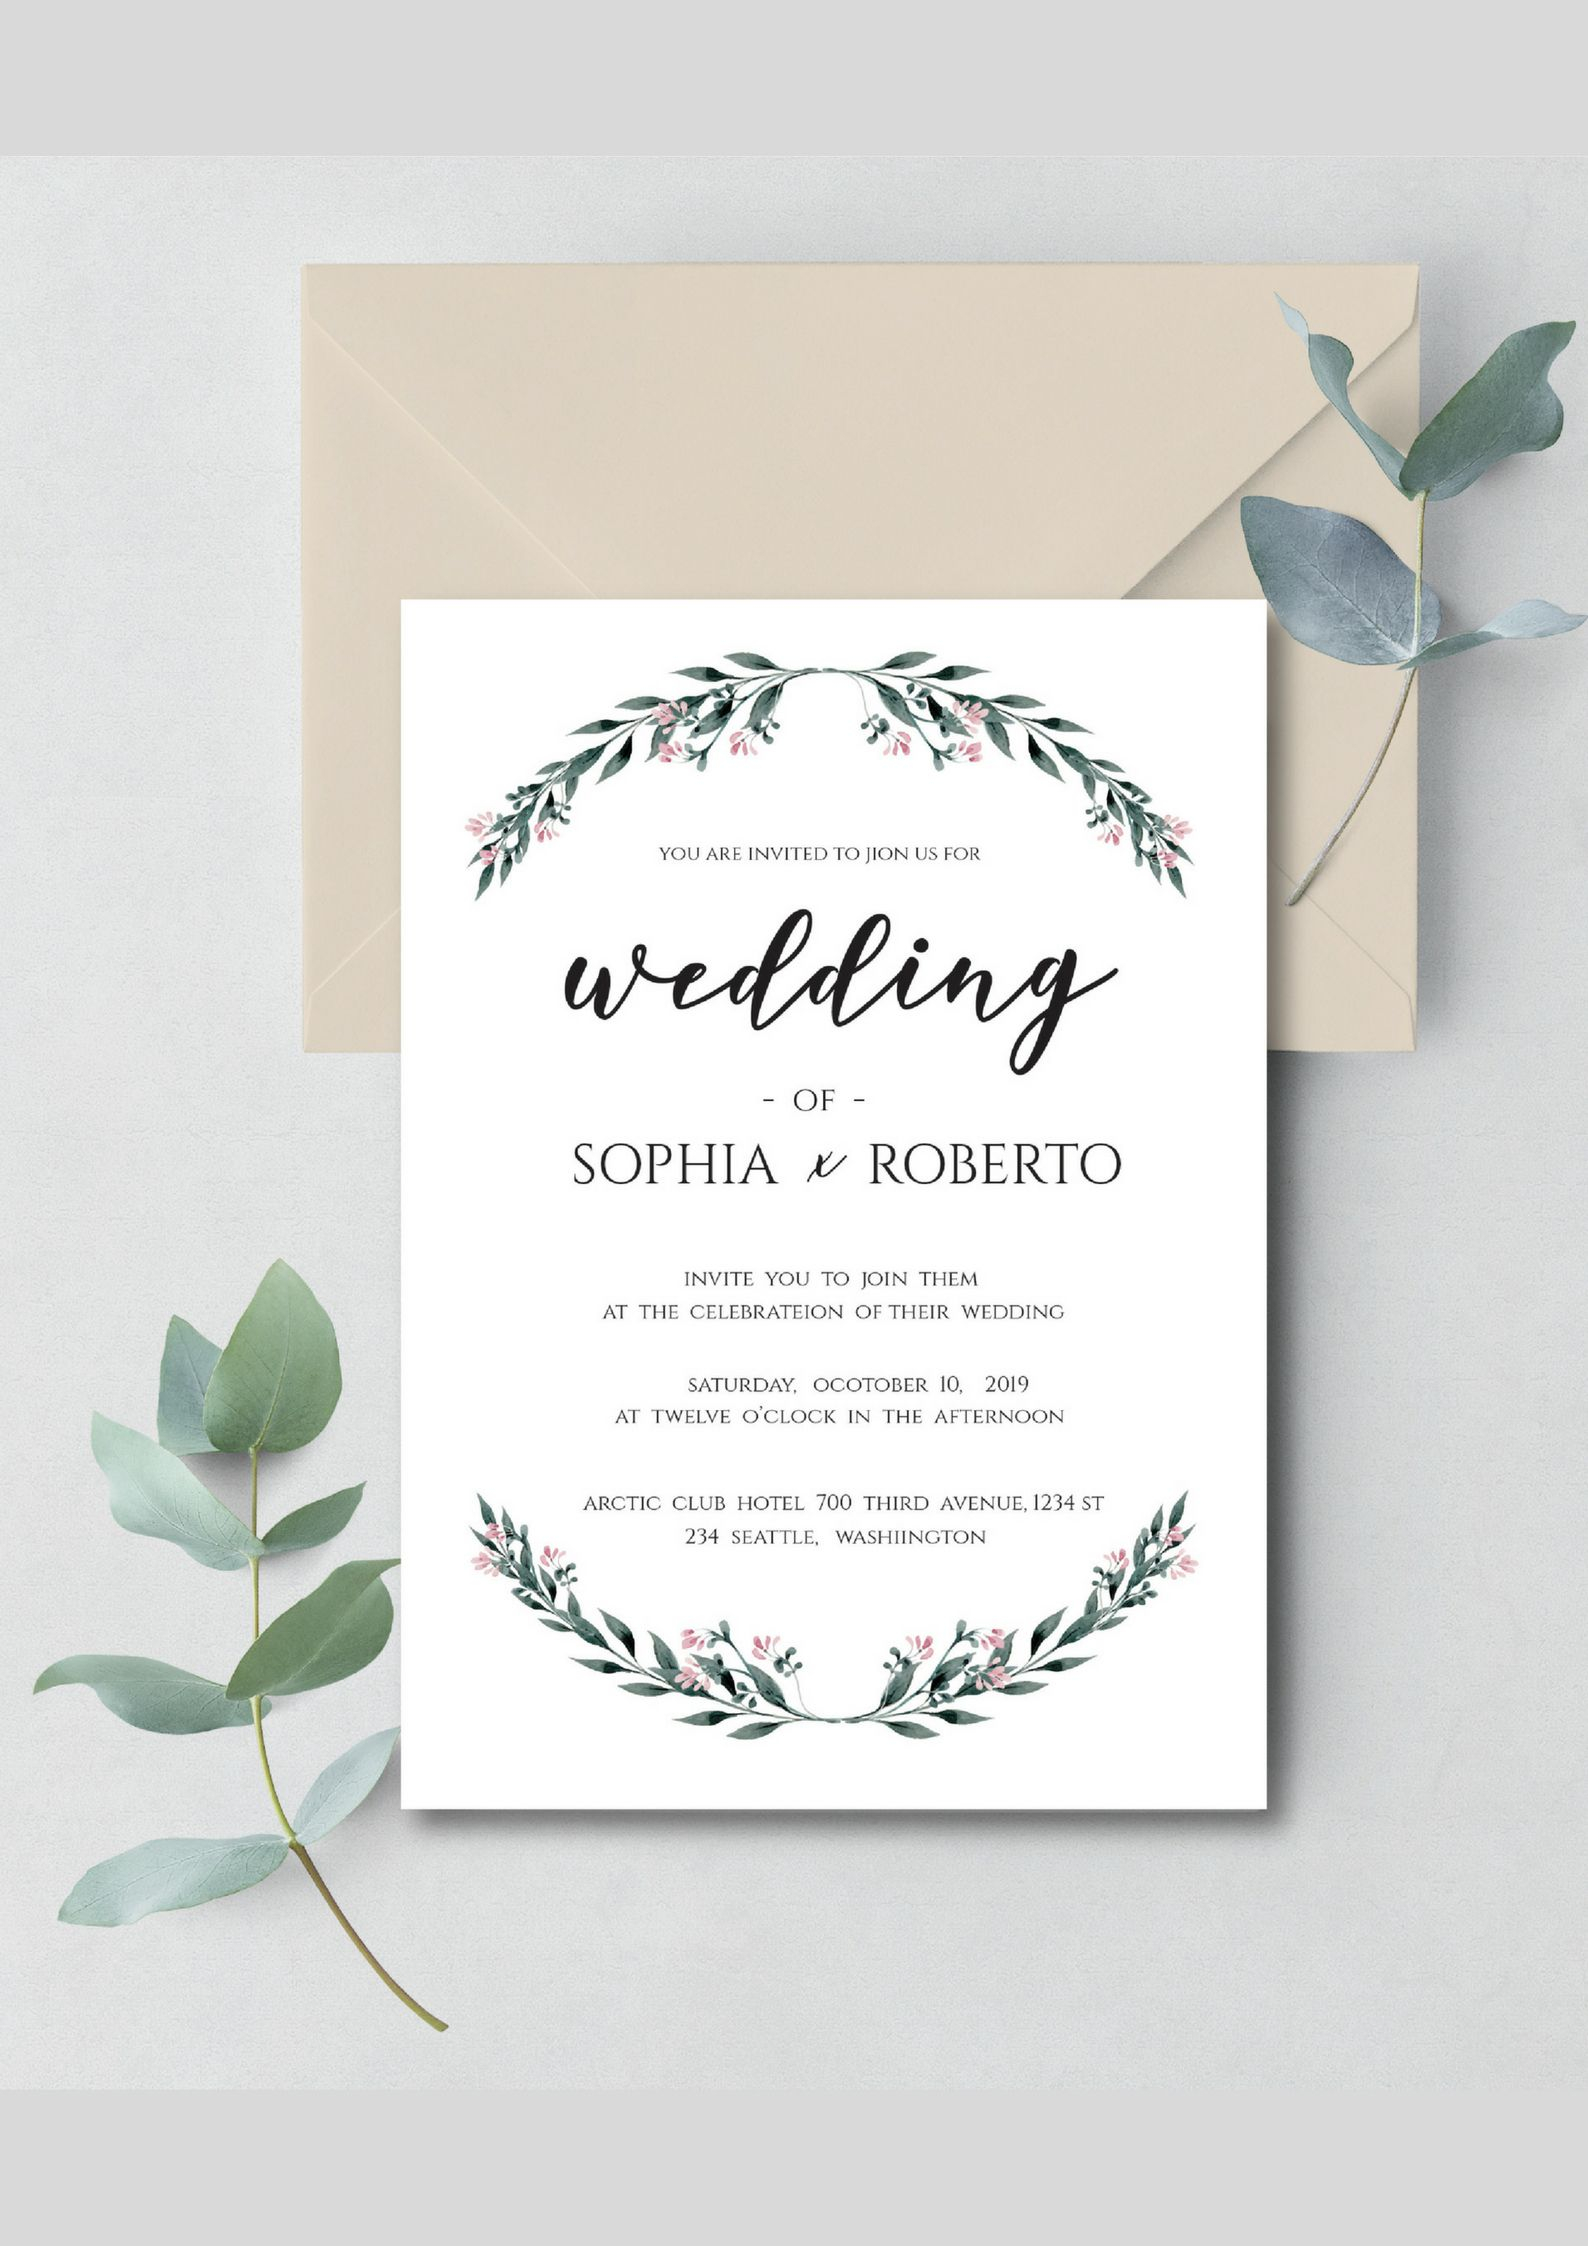 Rustic Wedding Invitation Template Download P Print Please within proportions 1588 X 2246